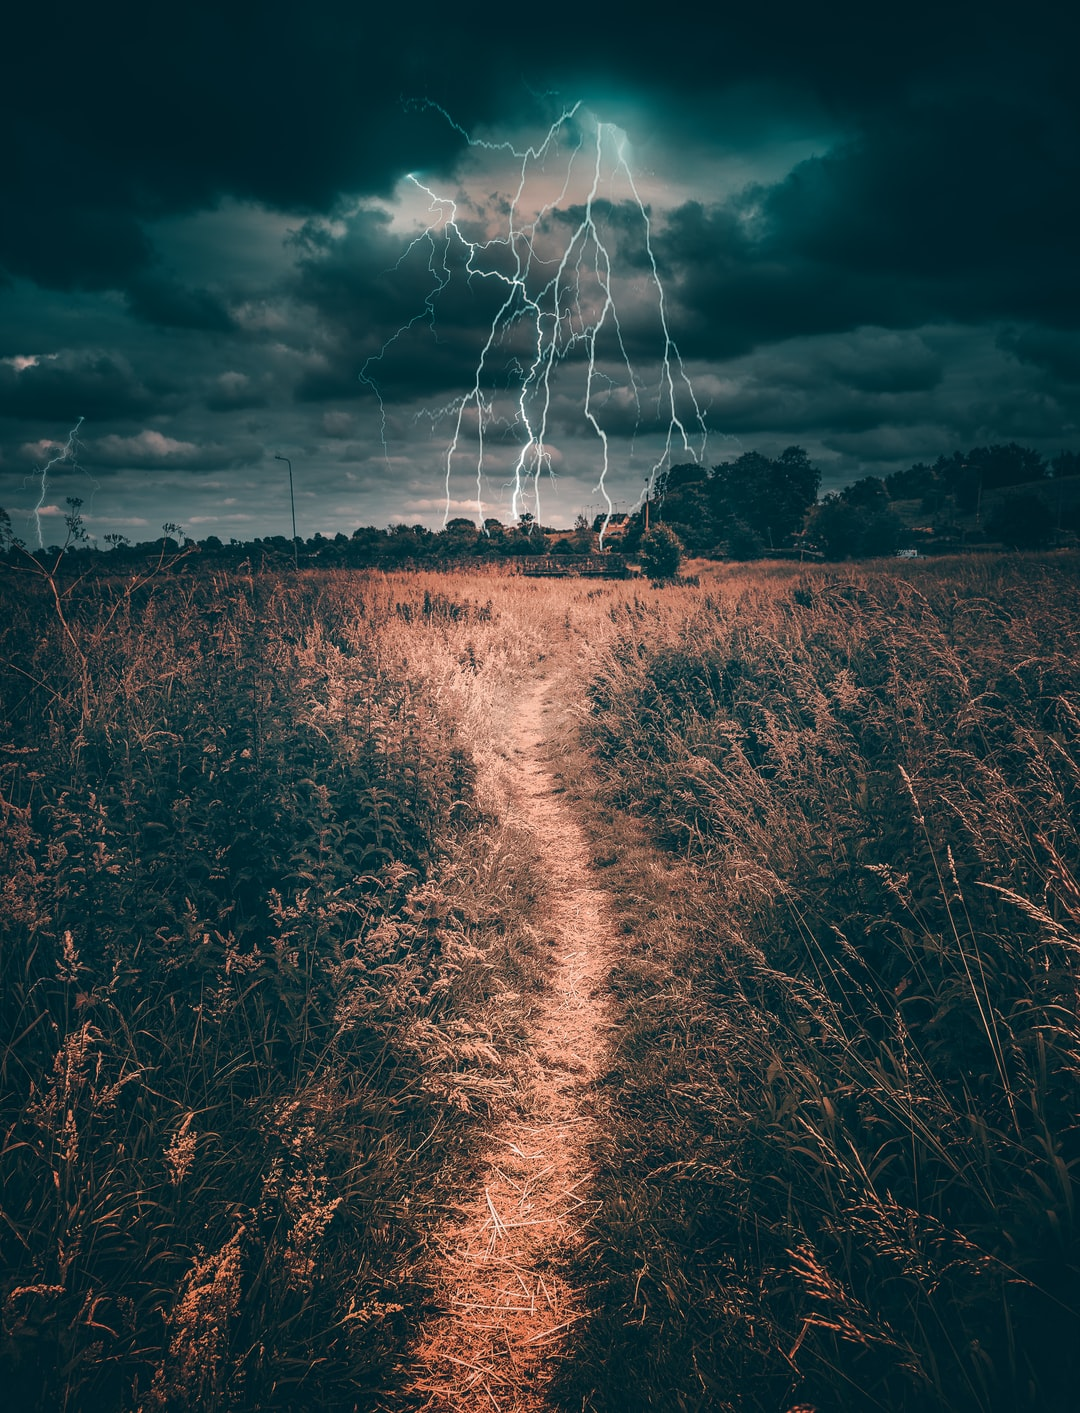 Very dramatic shot captured in Meath Ireland. We dont get lightning often in Ireland but when we do its very special.